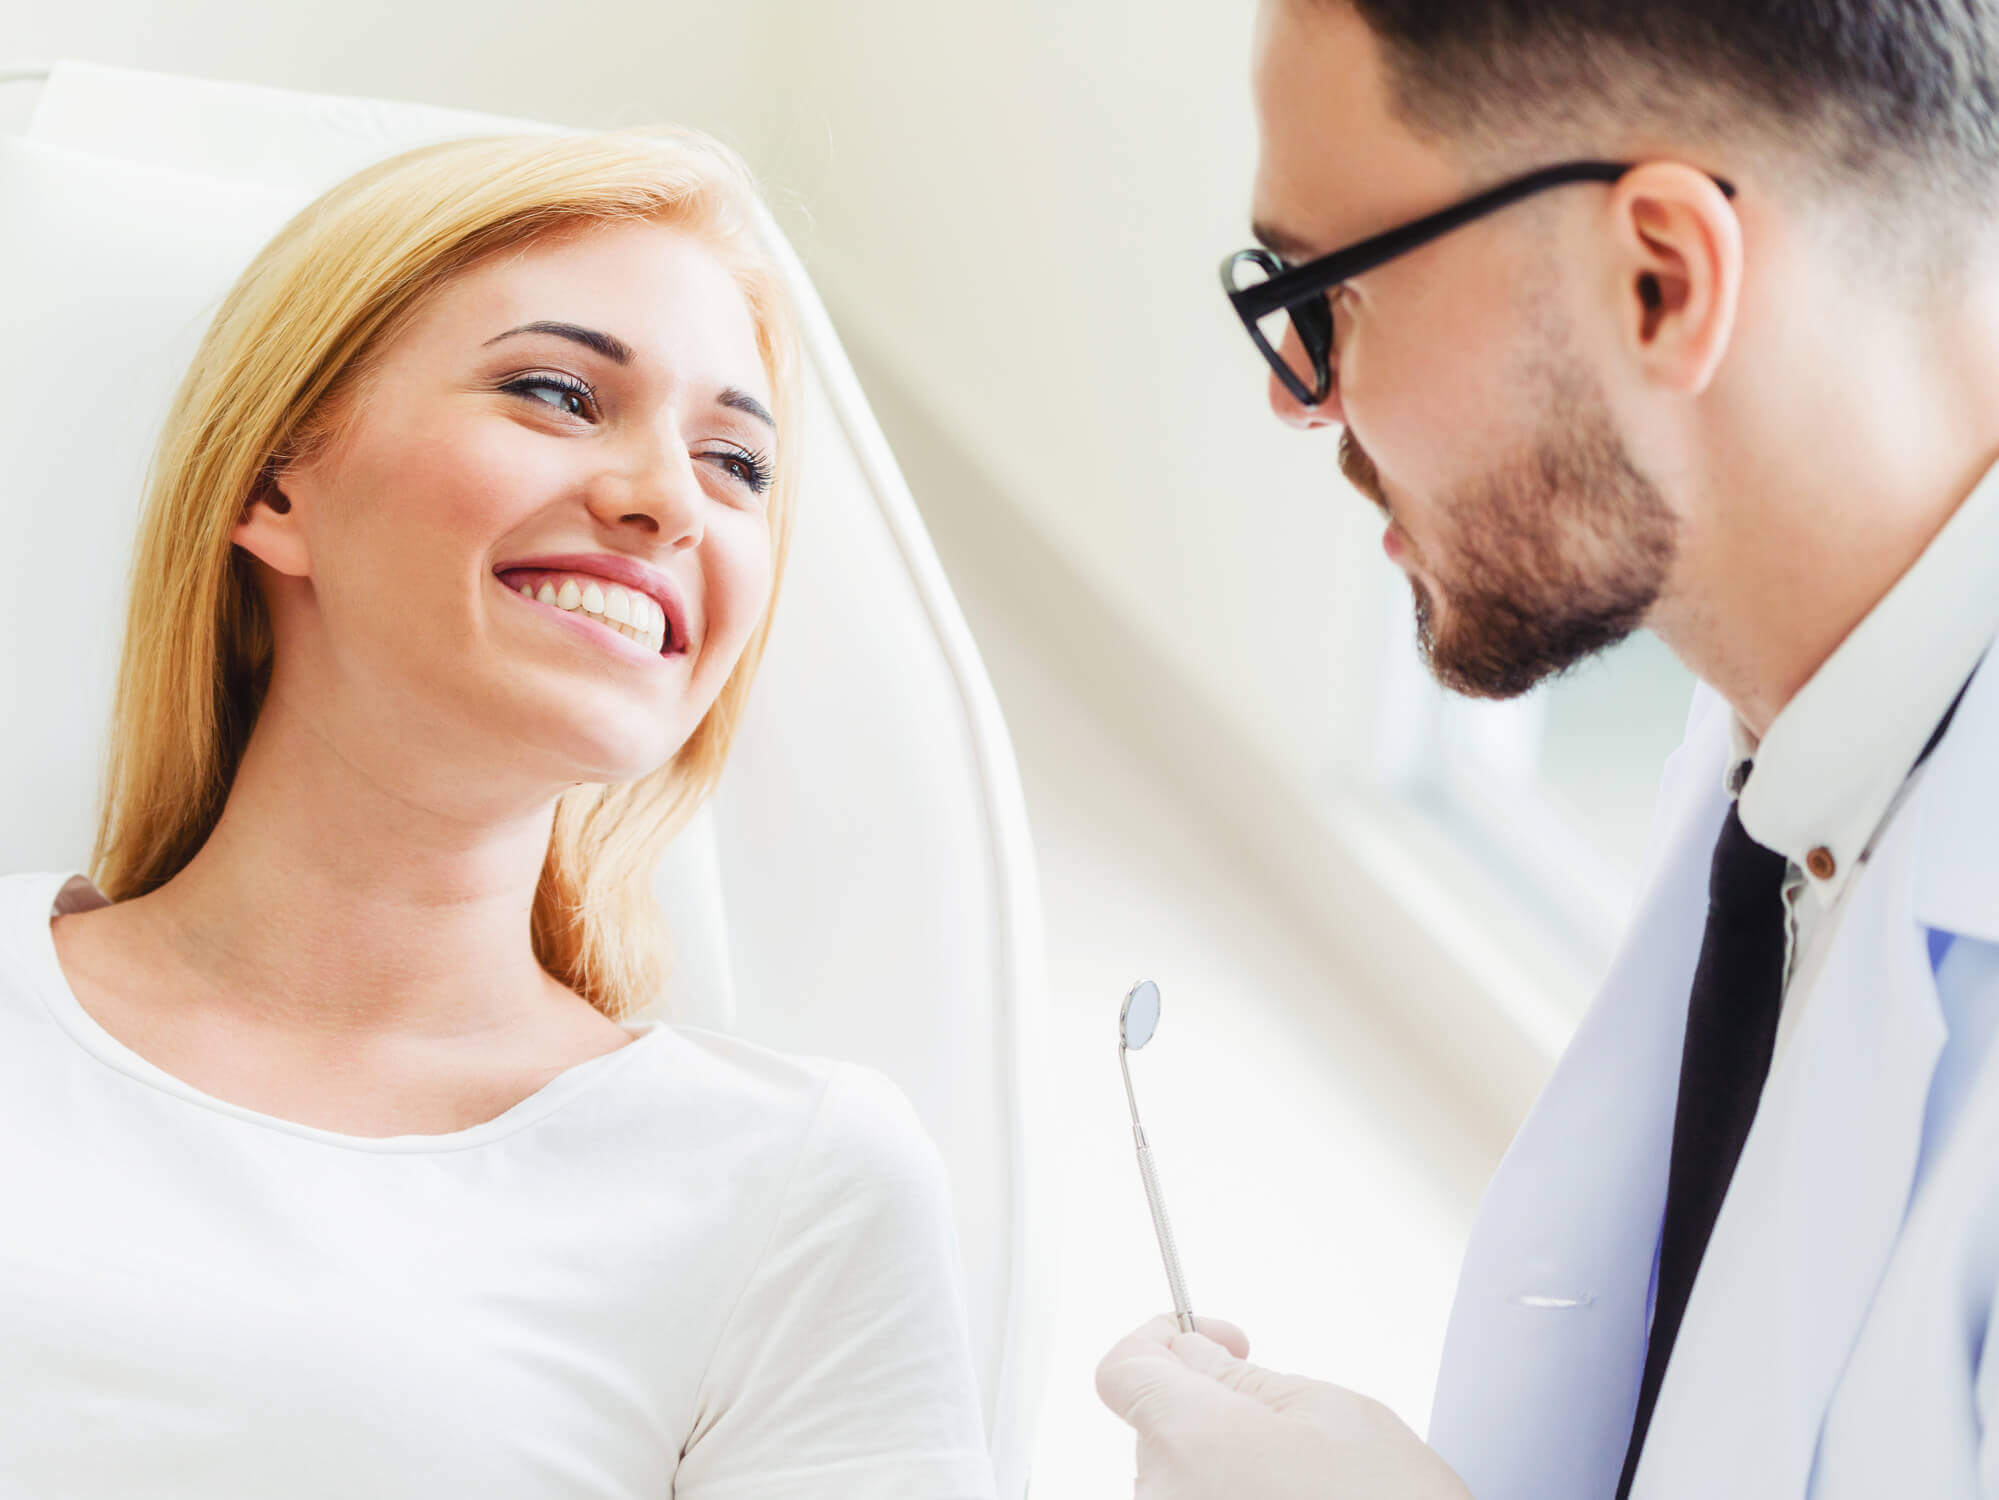 where can i get sedation dentistry in north miami?